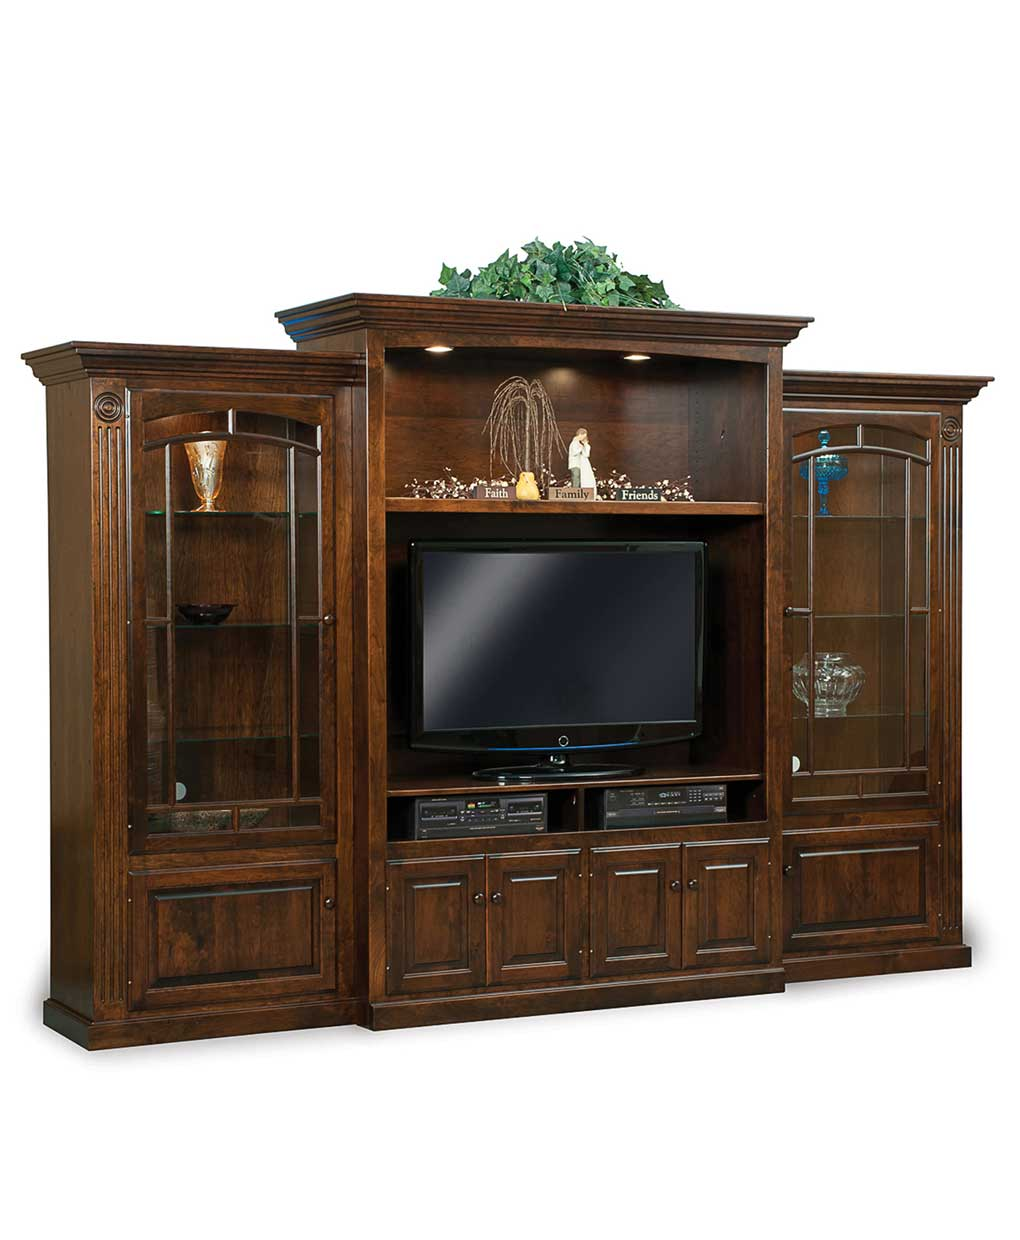 Victorian 3 Piece Wall Unit Amish Direct Furniture